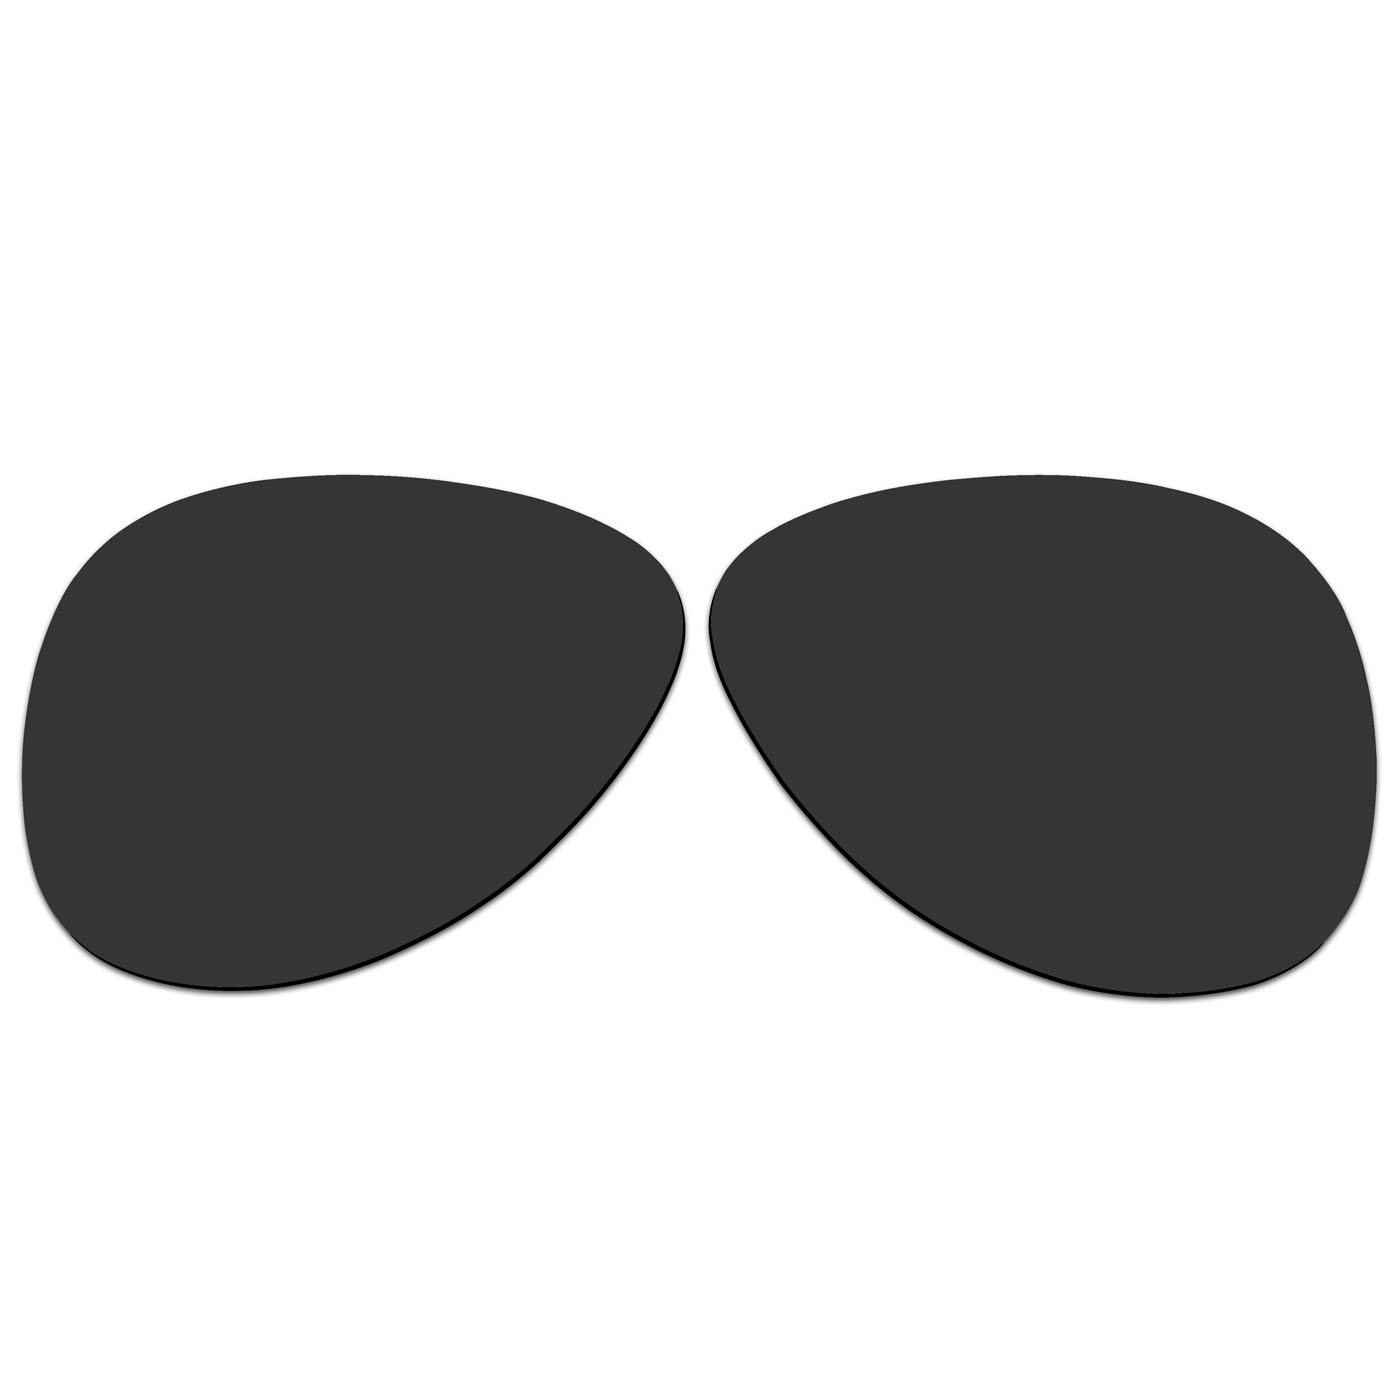 5c73797113 ACOMPATIBLE Replacement Lenses for Oakley Kickback Sunglasses OO4102 (Black  - Polarized)  Amazon.co.uk  Sports   Outdoors